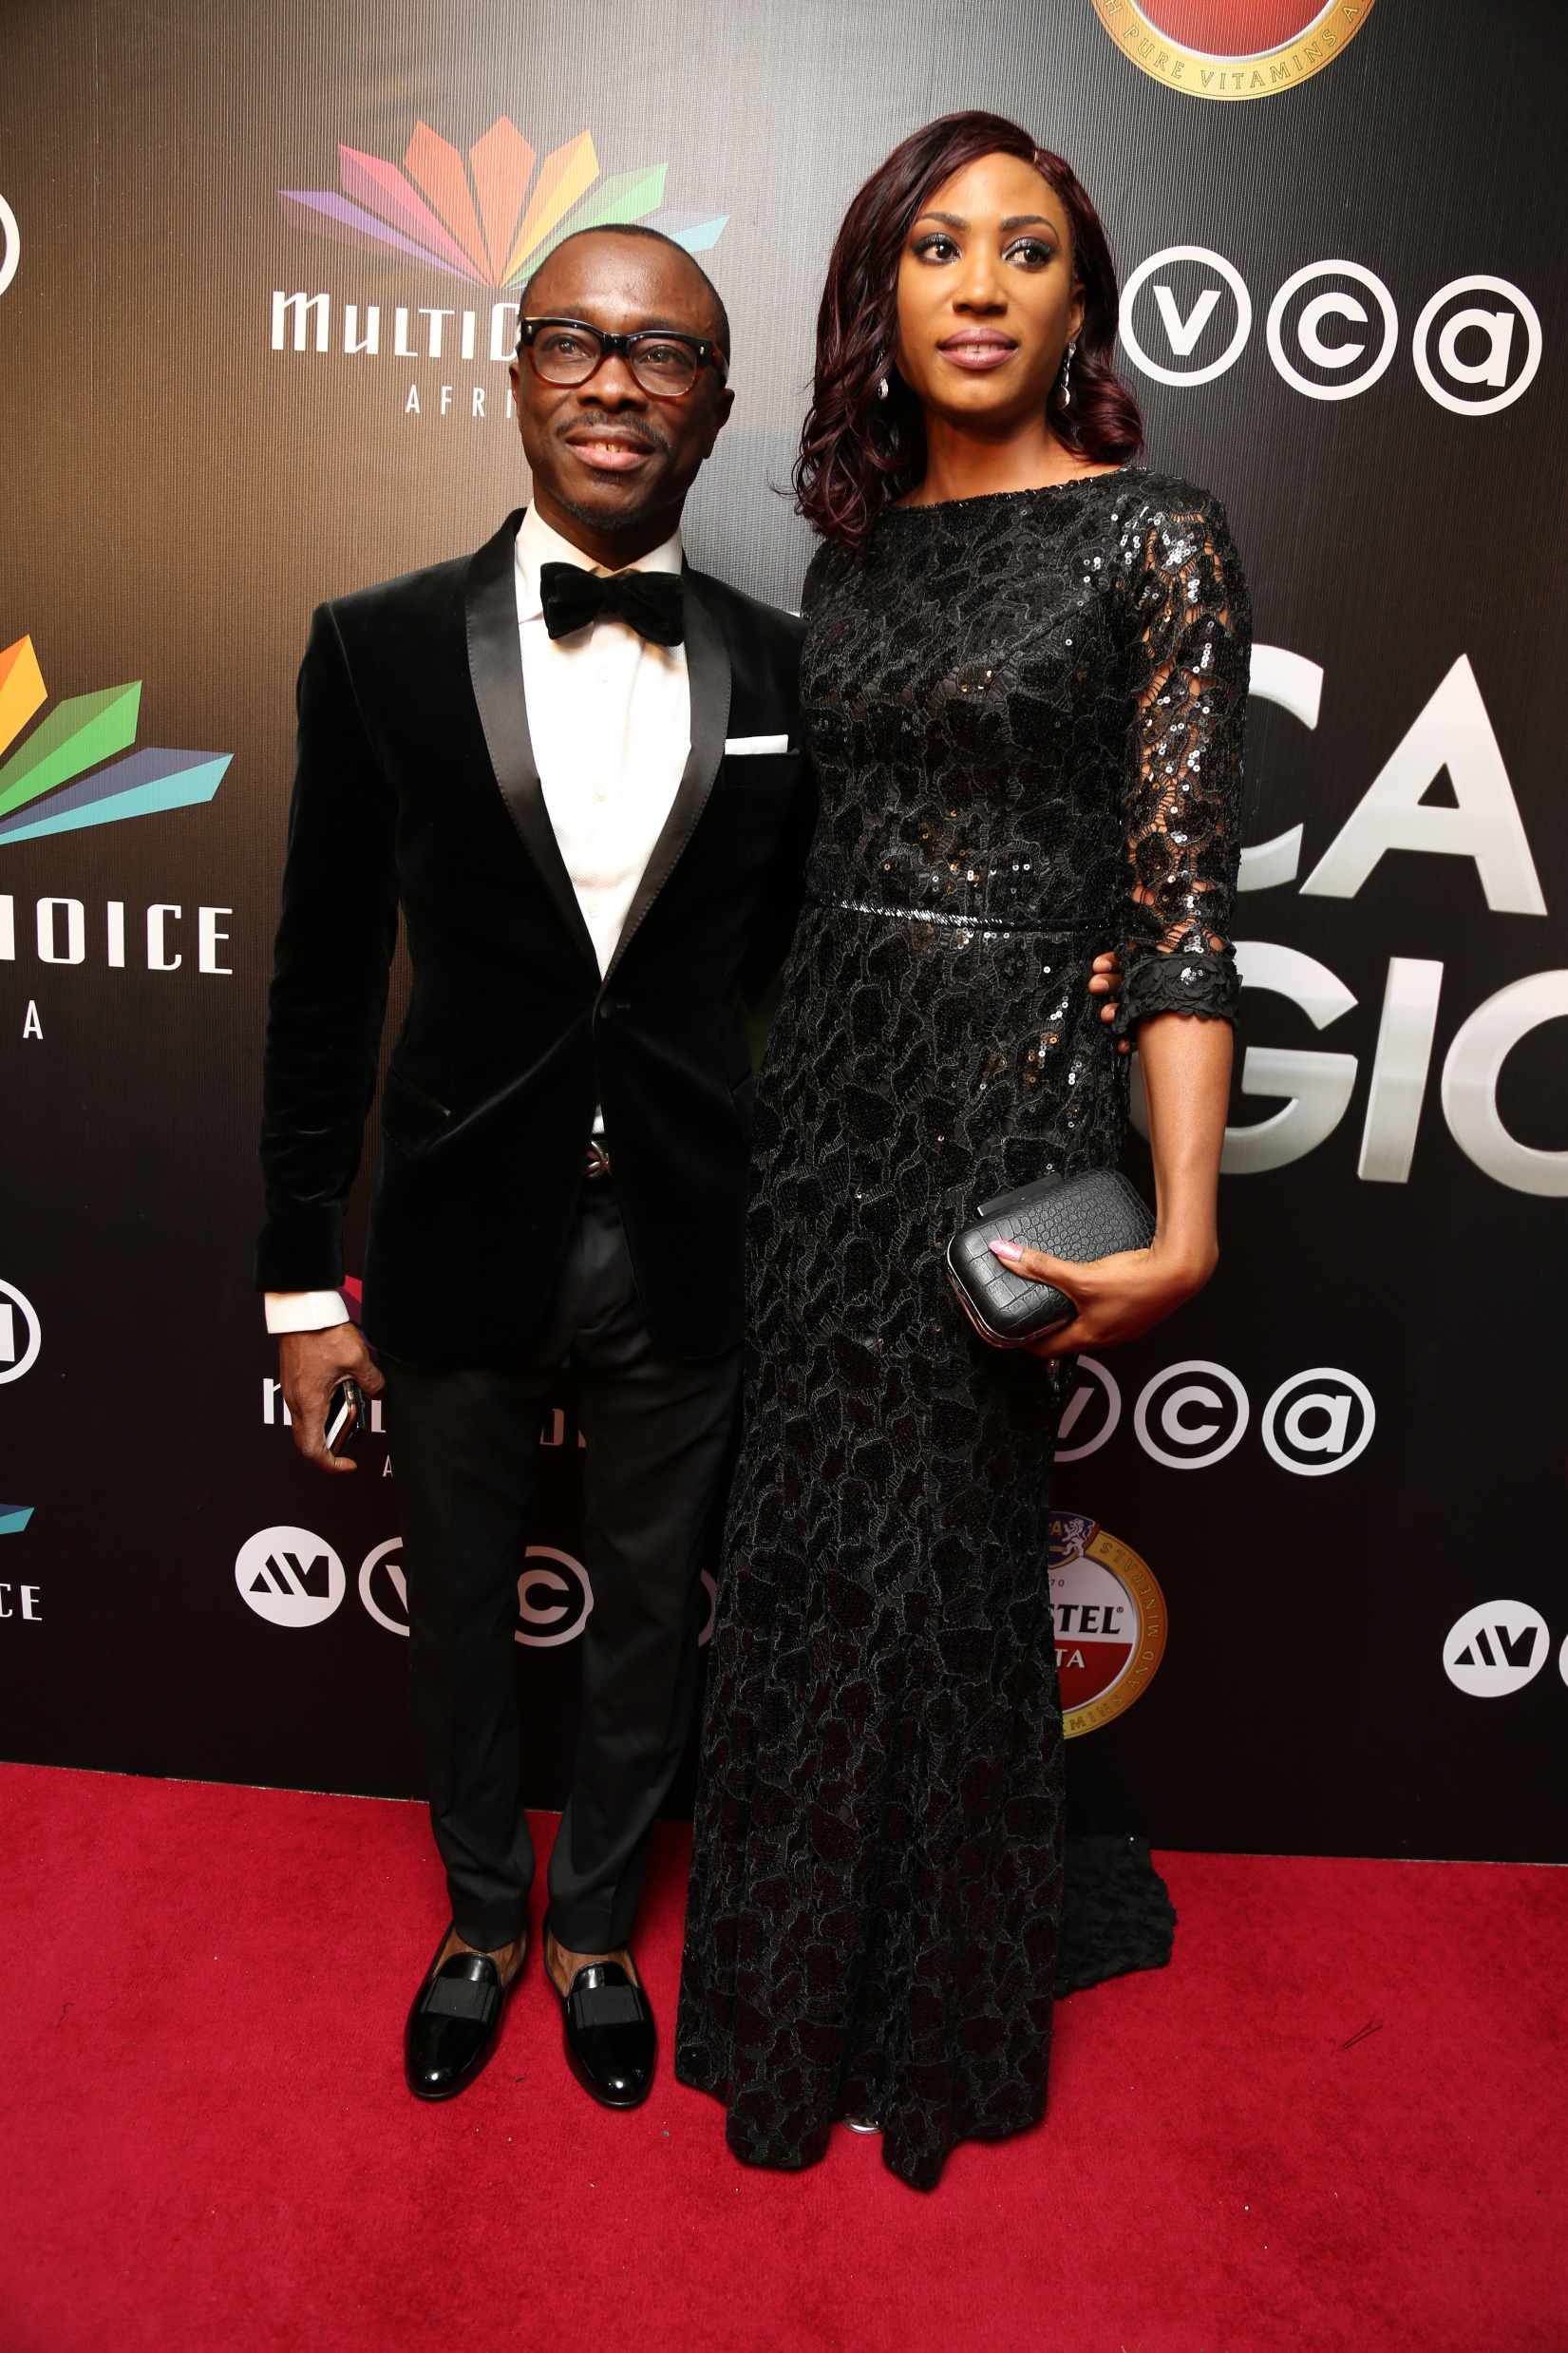 Julius Agwu and wife